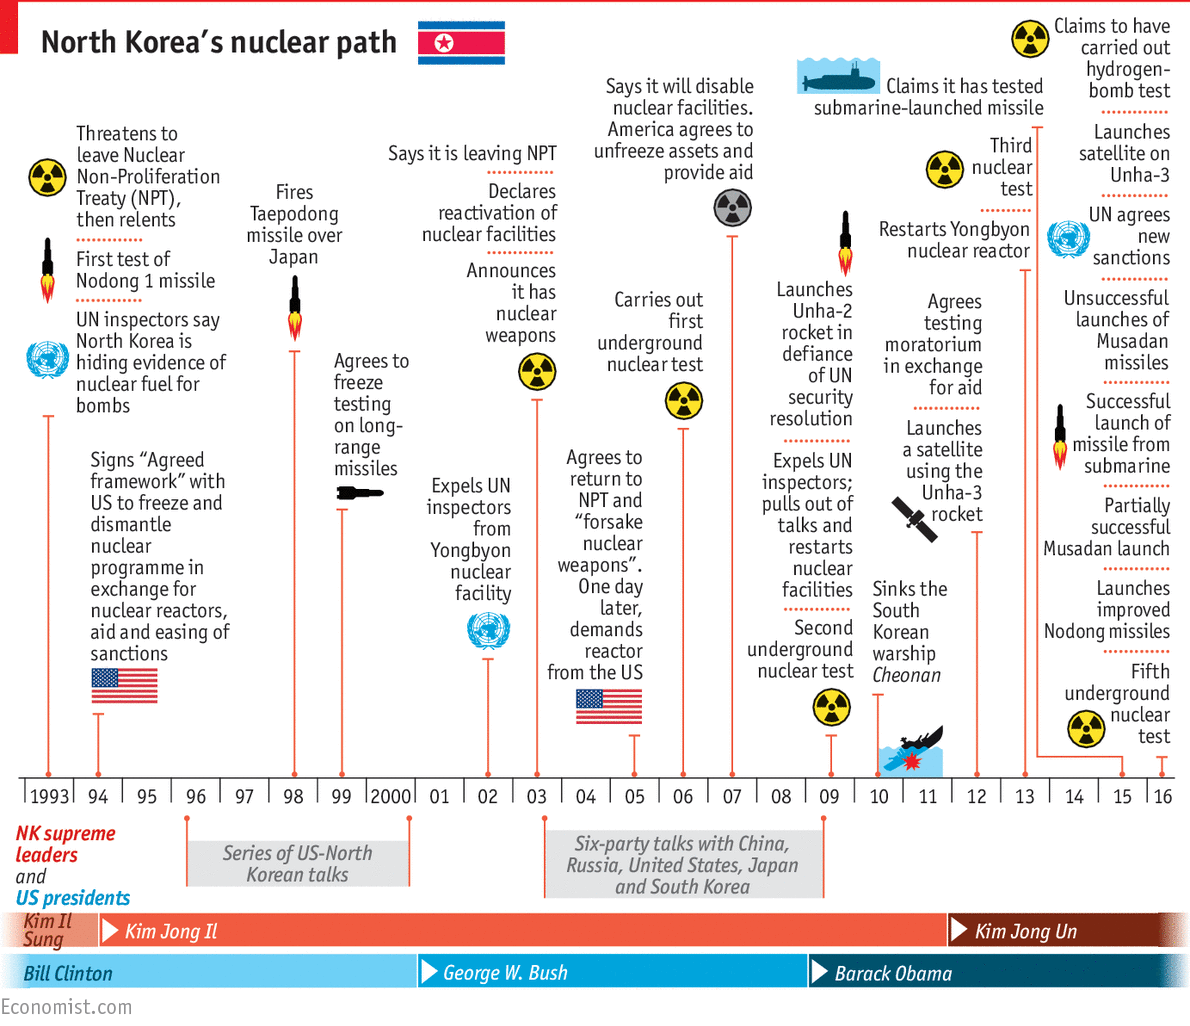 U.S. Nuclear Weapons and History